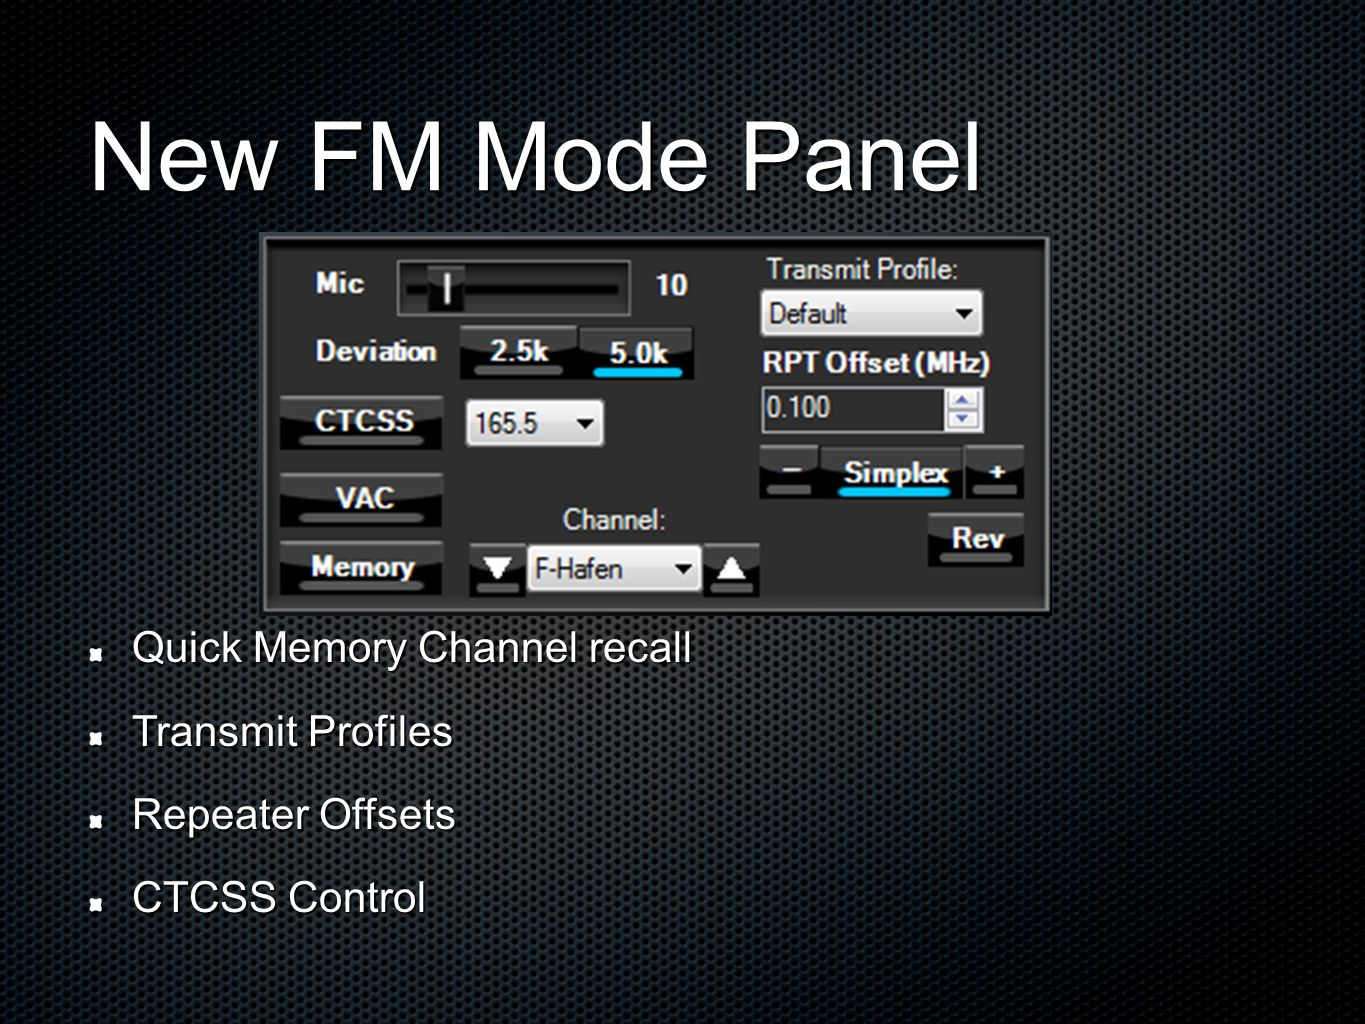 New FM Mode Panel Quick Memory Channel recall Transmit Profiles Repeater Offsets CTCSS Control